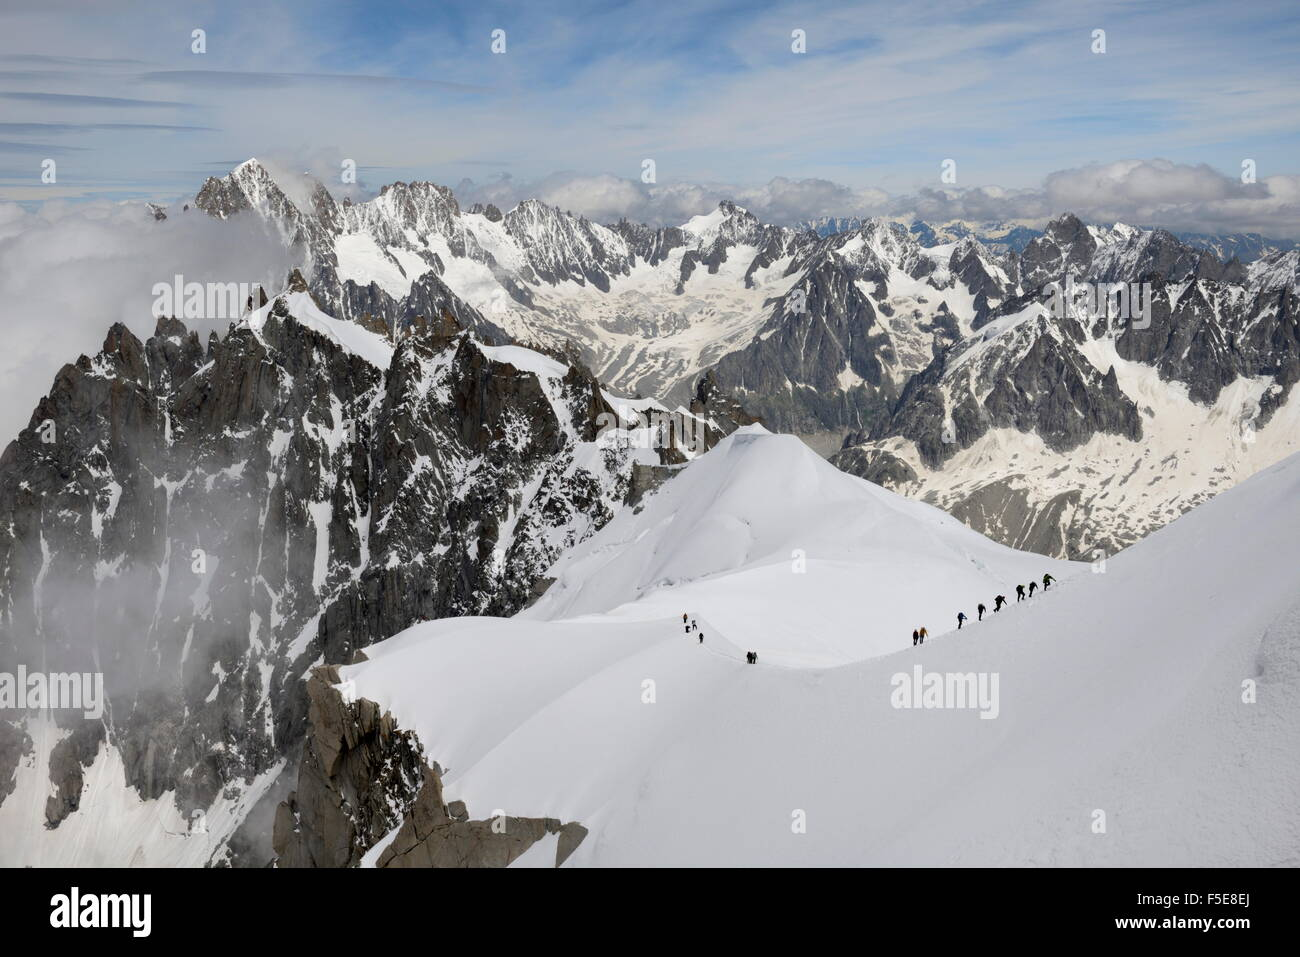 Mountaineers and climbers, Mont Blanc Massif, Aiguille du Midi, Chamonix, Haute Savoie, French Alps, France, Europe Stock Photo